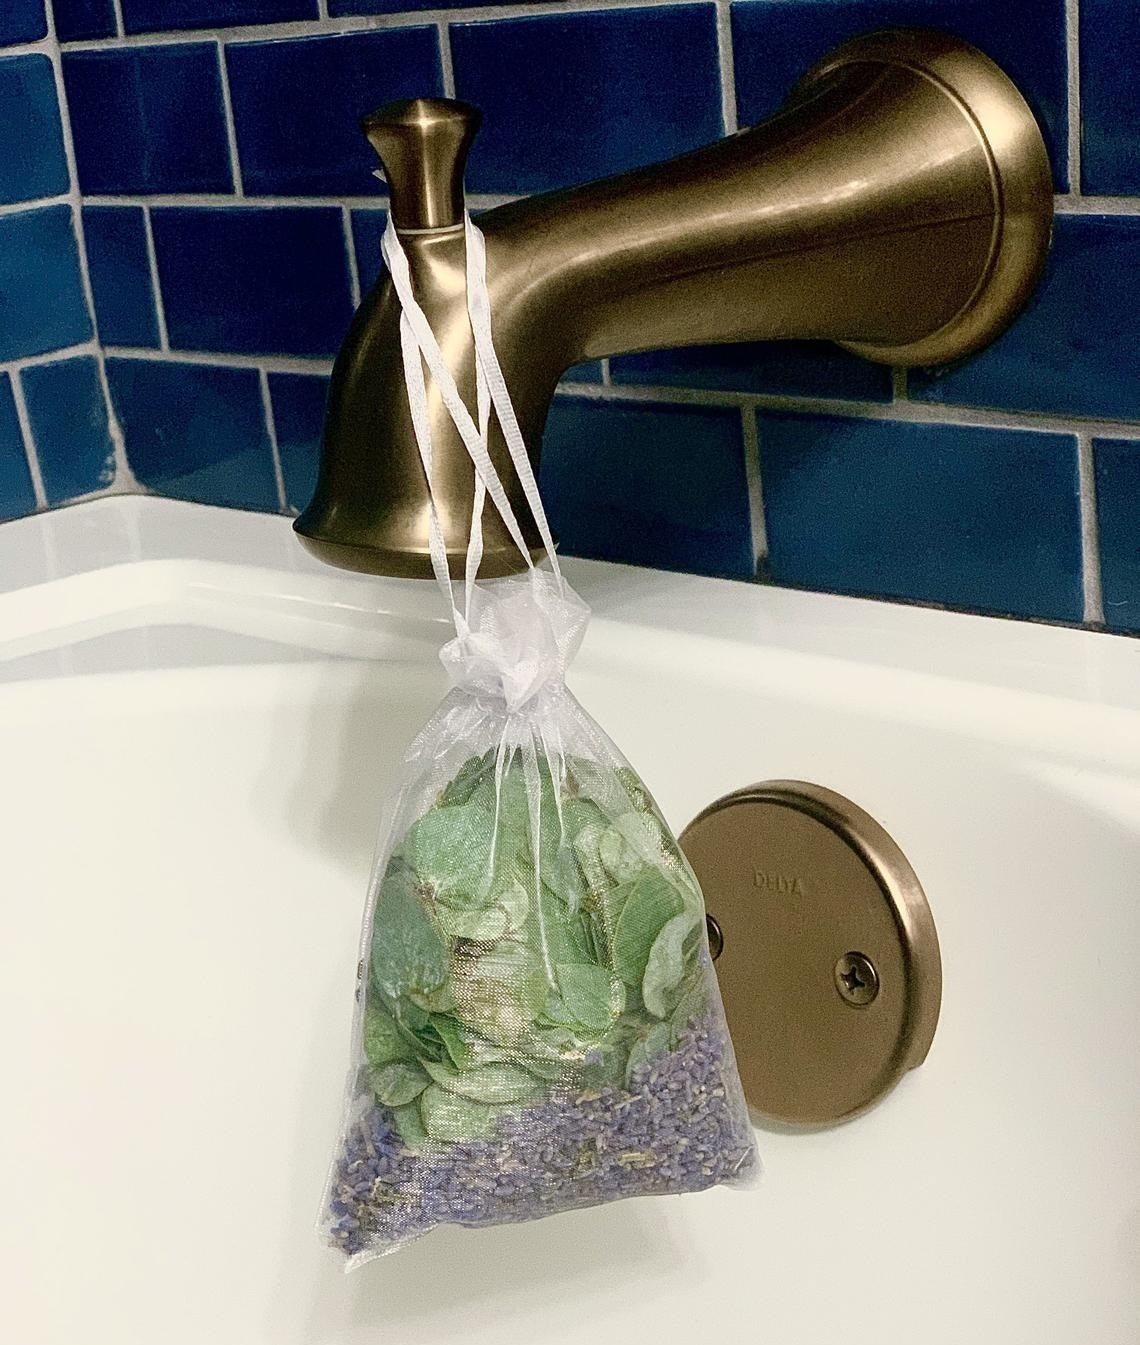 A small satchel of lavender and eucalyptus hanging from a bath handle